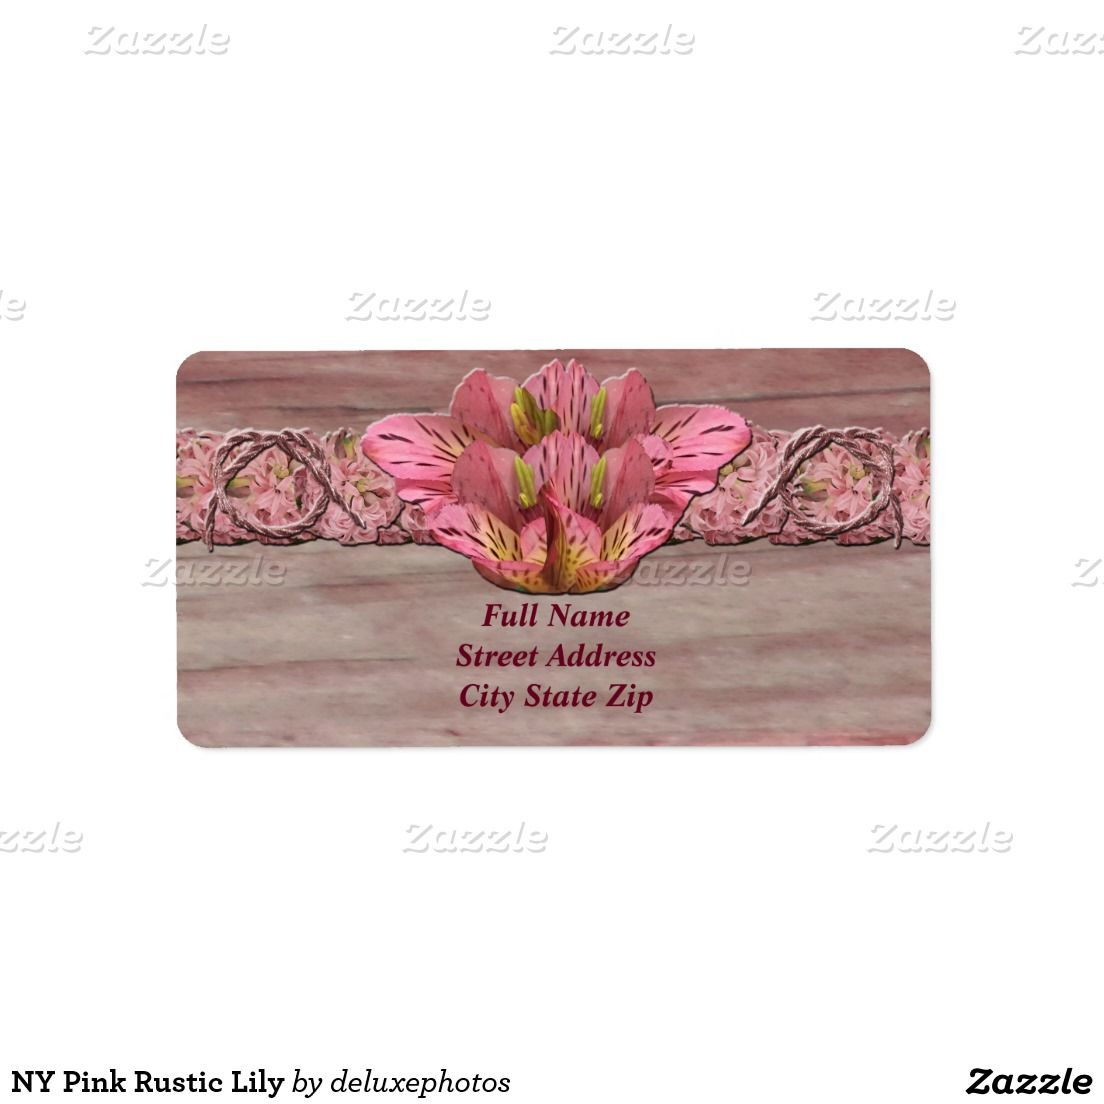 NY Pink Rustic Lily Label